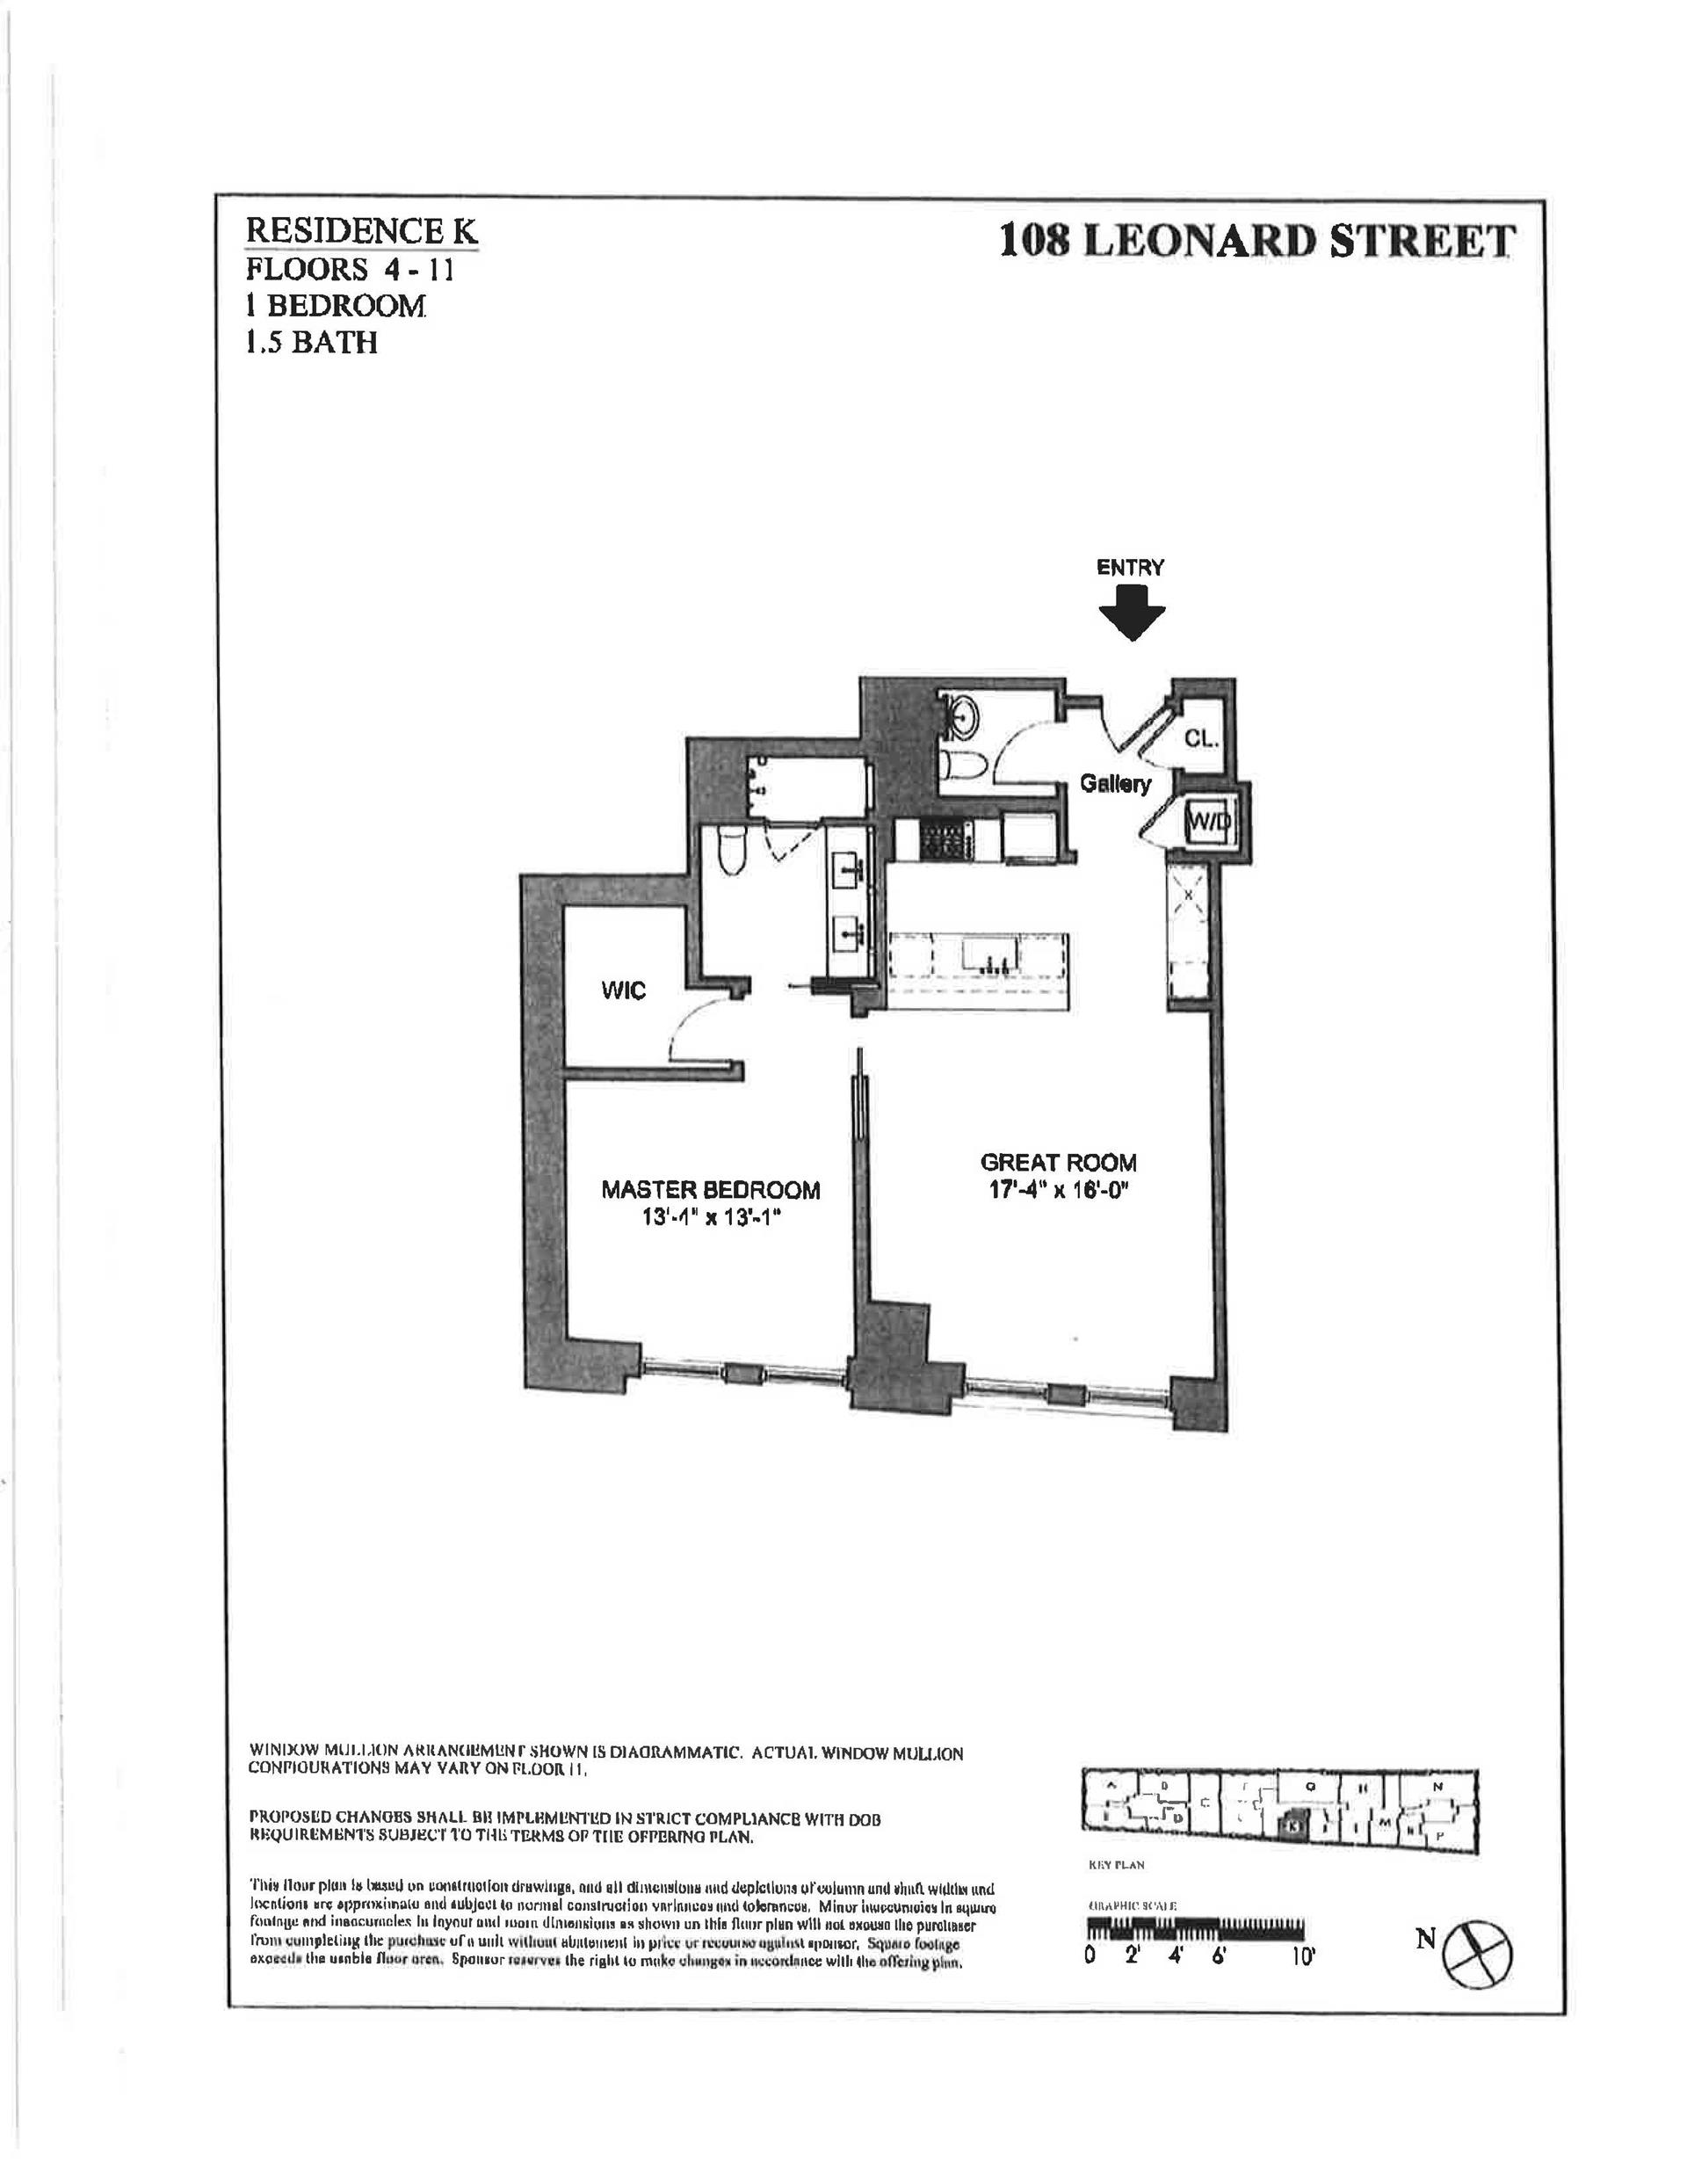 Floor plan of 108 Leonard St, 8K - TriBeCa, New York